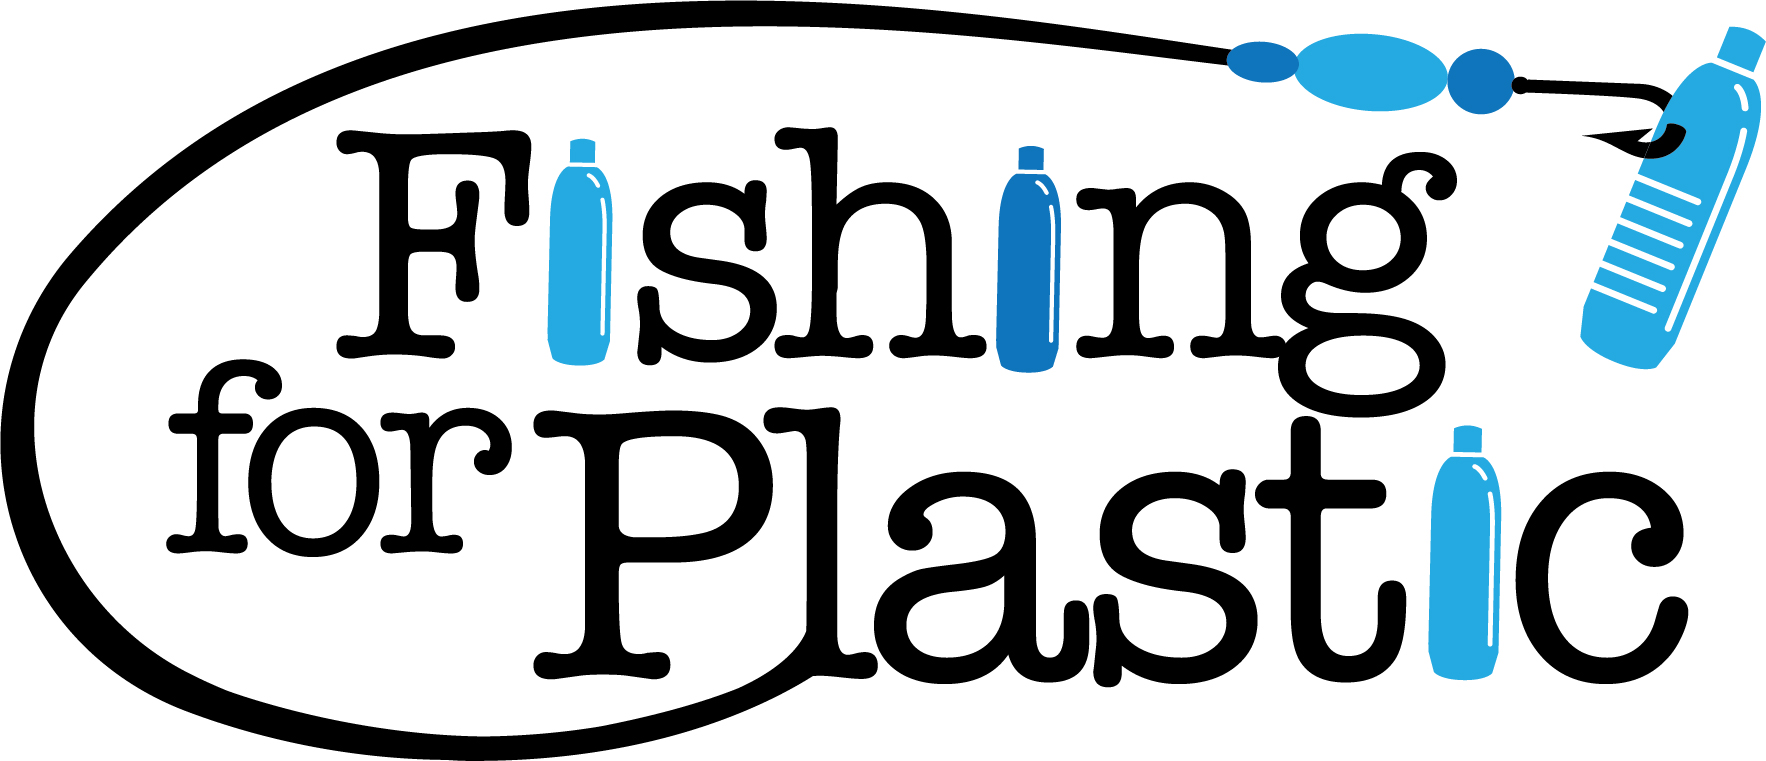 fishing for plastic logo-1.jpg